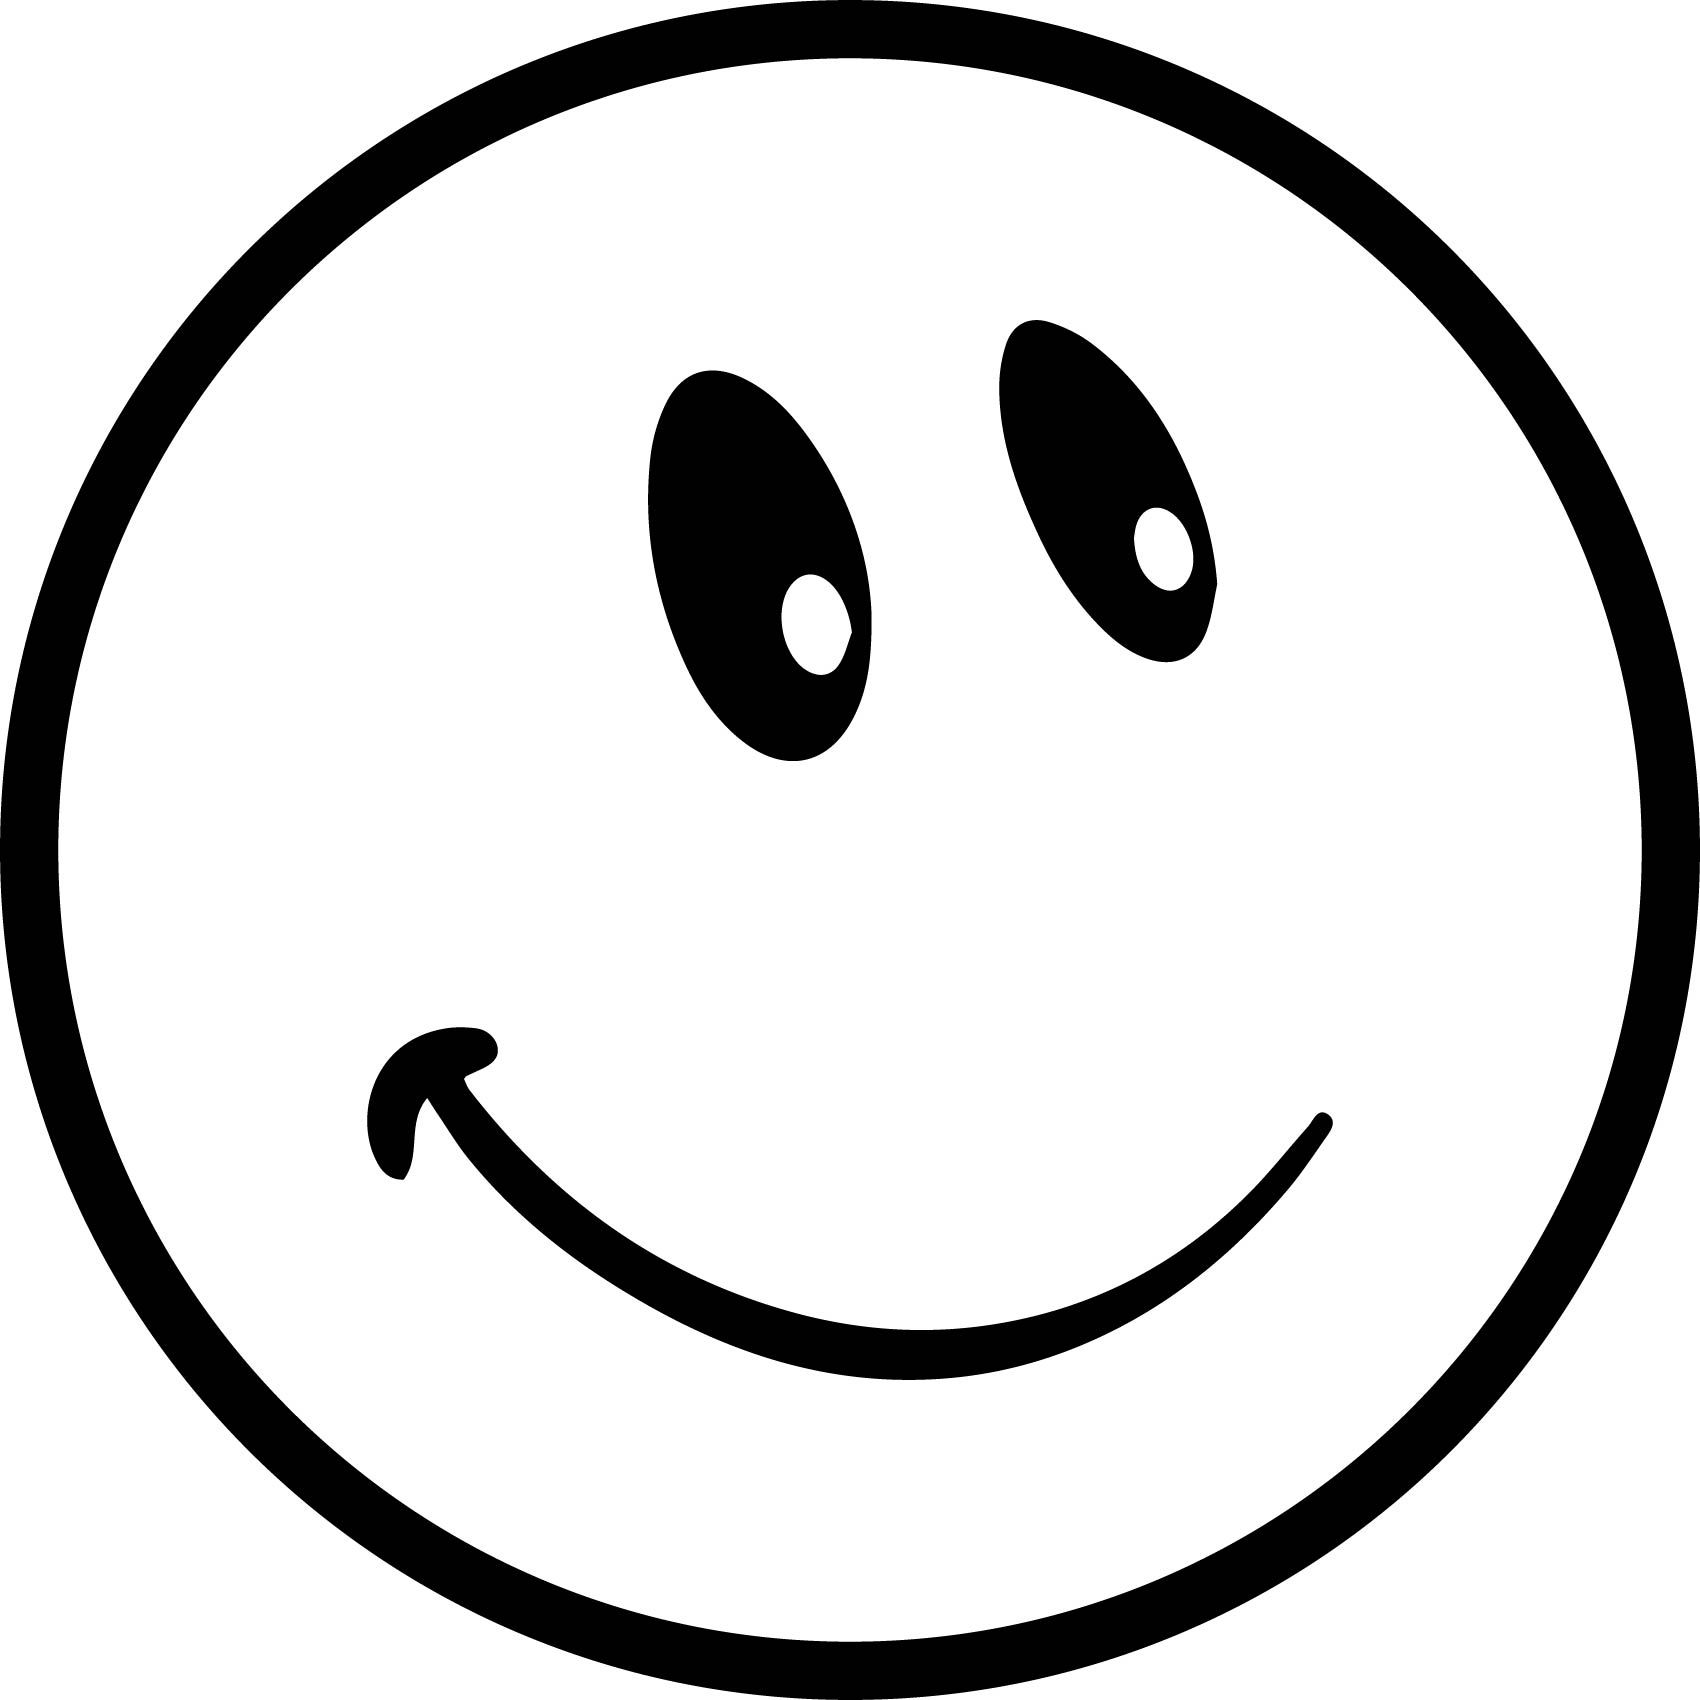 Funny Smile Emoticons Cute Face Coloring Page Wecoloringpage Com In 2020 Funny Smile Coloring Pages Cute Faces